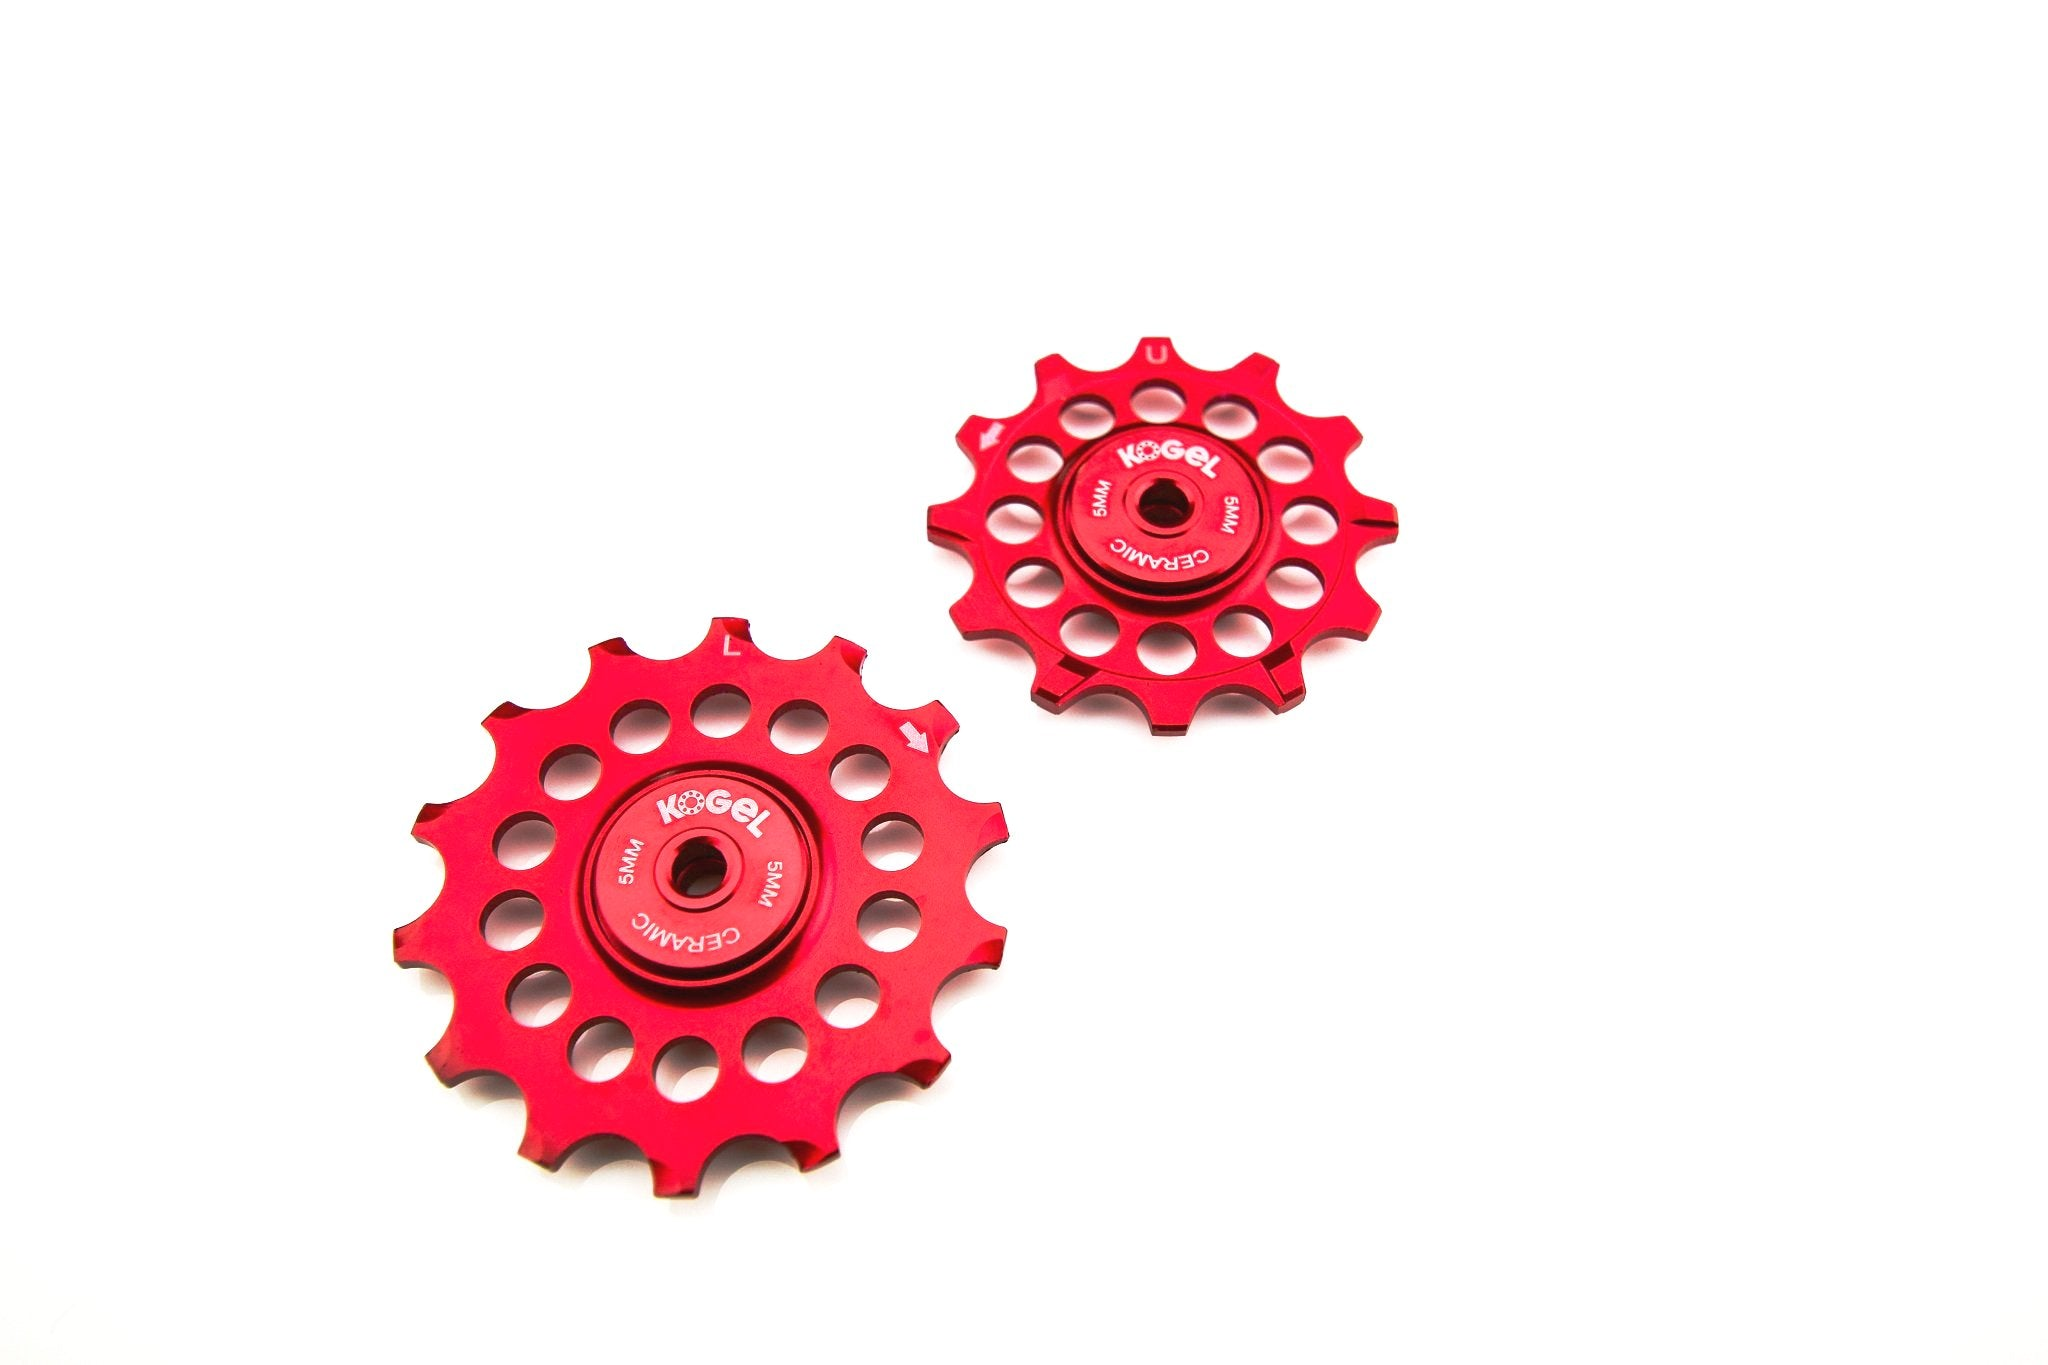 Fire Engine Red 12/14T Oversized pulleys for Shimano and Sram road derailleurs